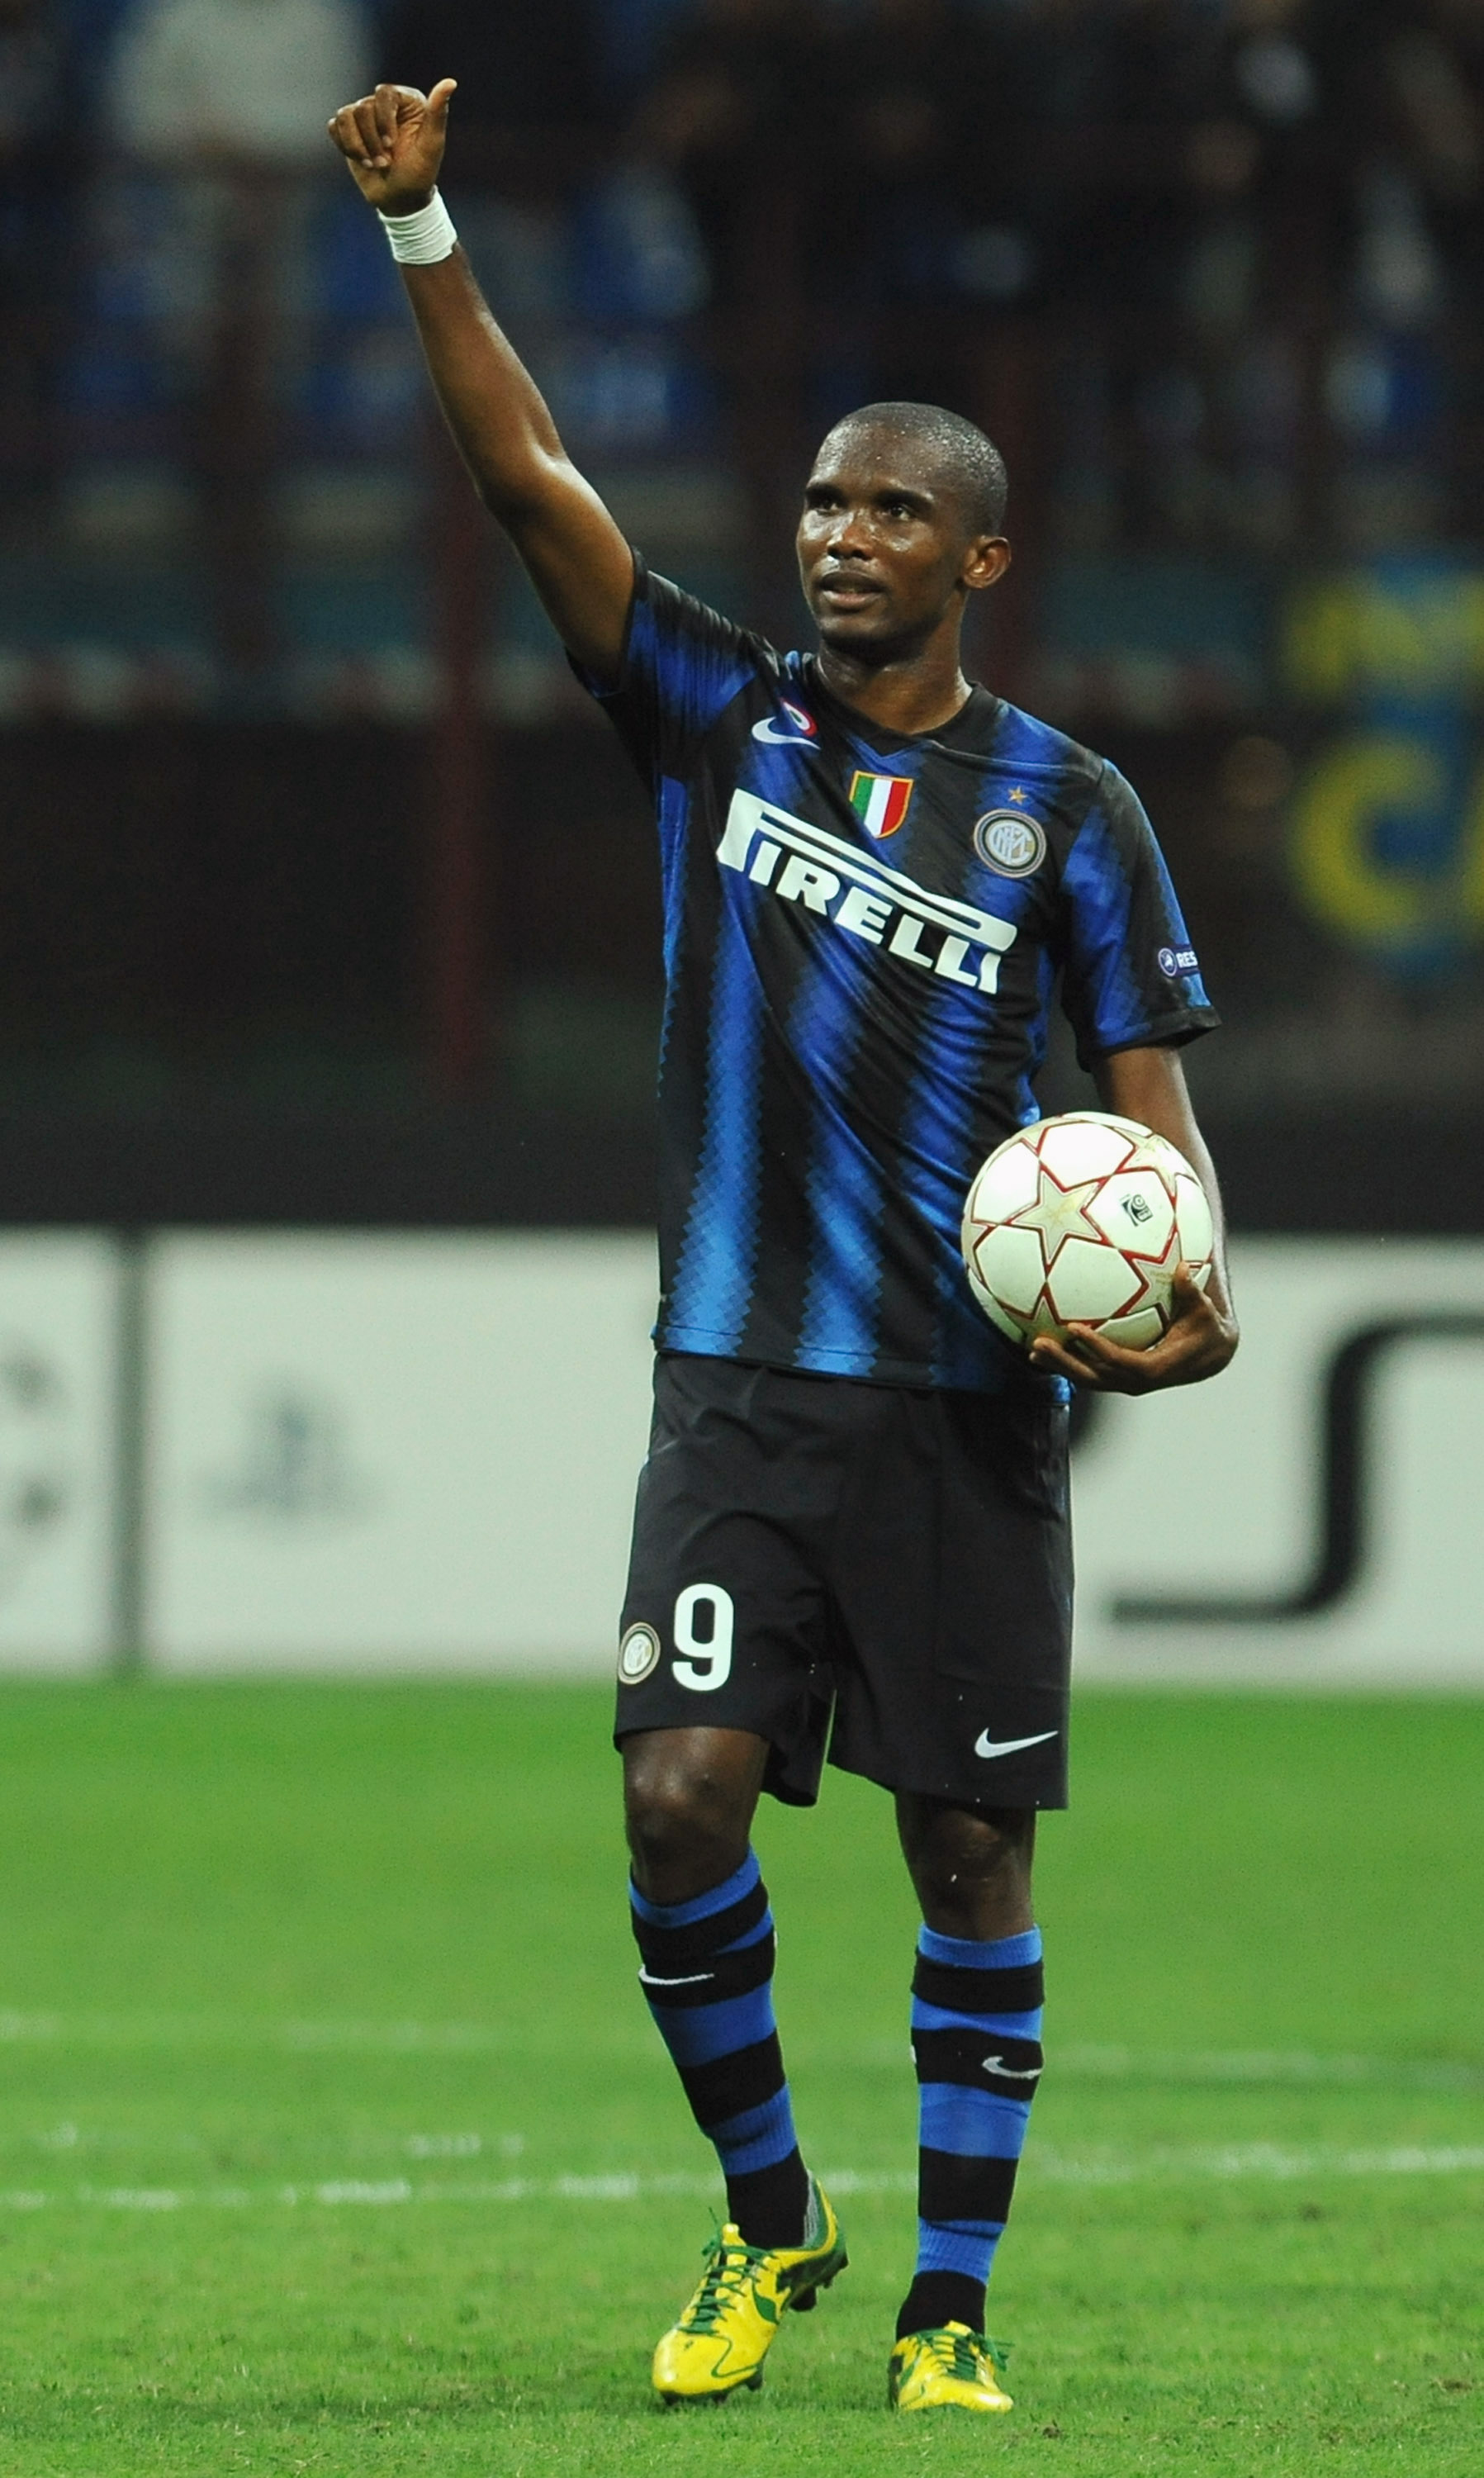 MILAN, ITALY - SEPTEMBER 29:  Samuel Eto'o of FC Internazionale Milano with the ball of the match celebrates victoryafter the UEFA Champions League group A match between FC Internazionale Milano and SV Werder Bremen at Stadio Giuseppe Meazza on September